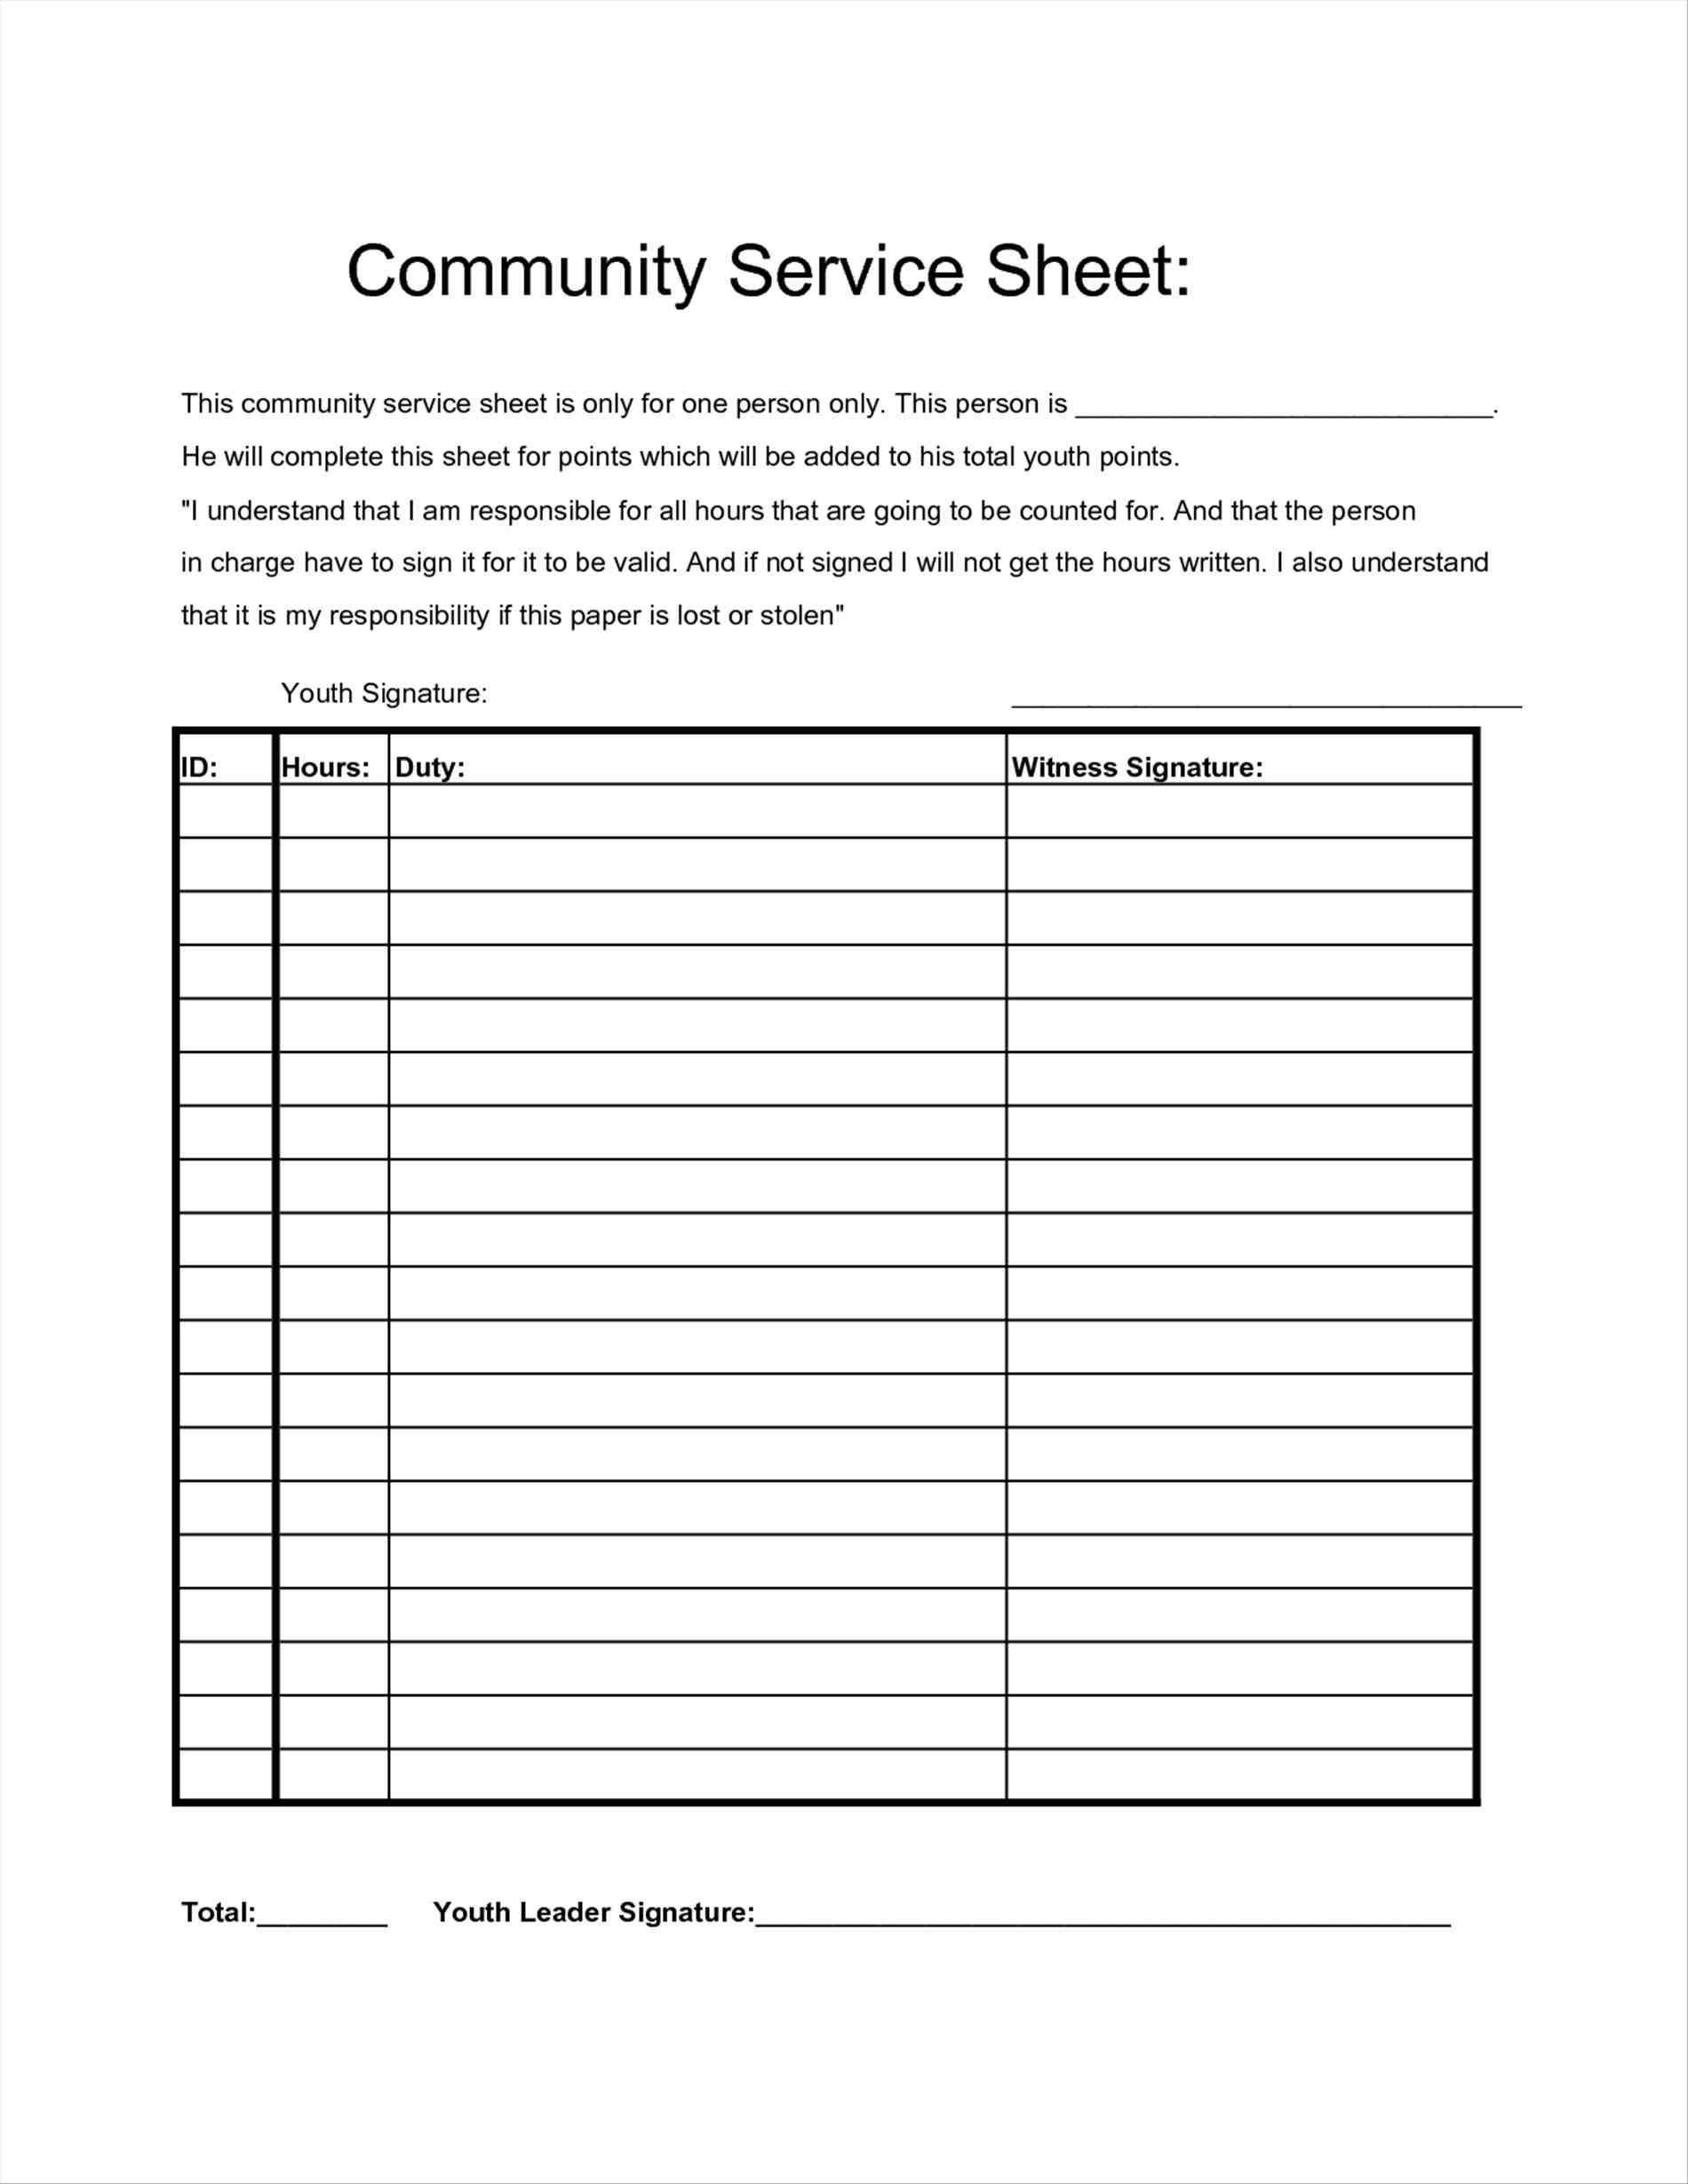 Community Service Timesheet – New-Top-Directory - Free Printable Community Service Log Sheet